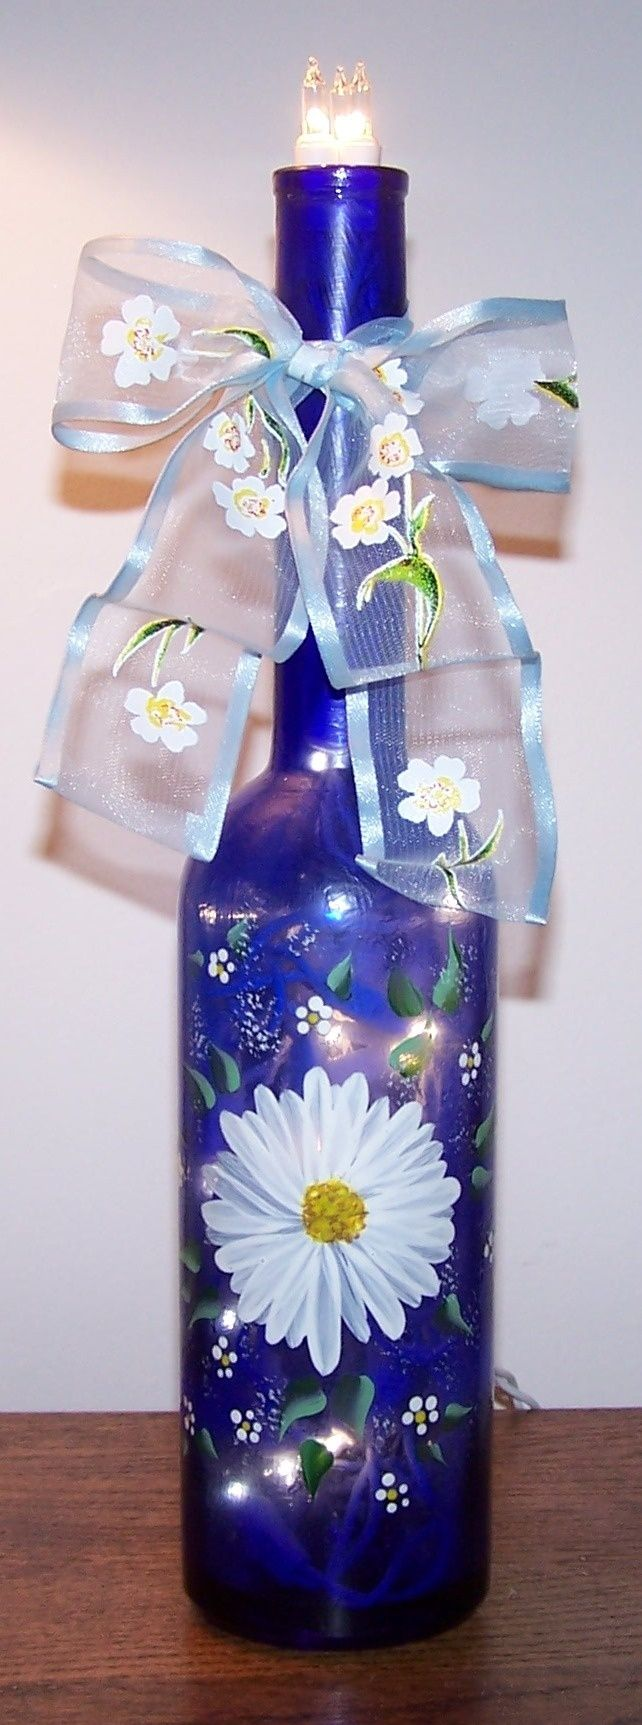 Hand Painted Floral Bottle | GLASS CRAFTS